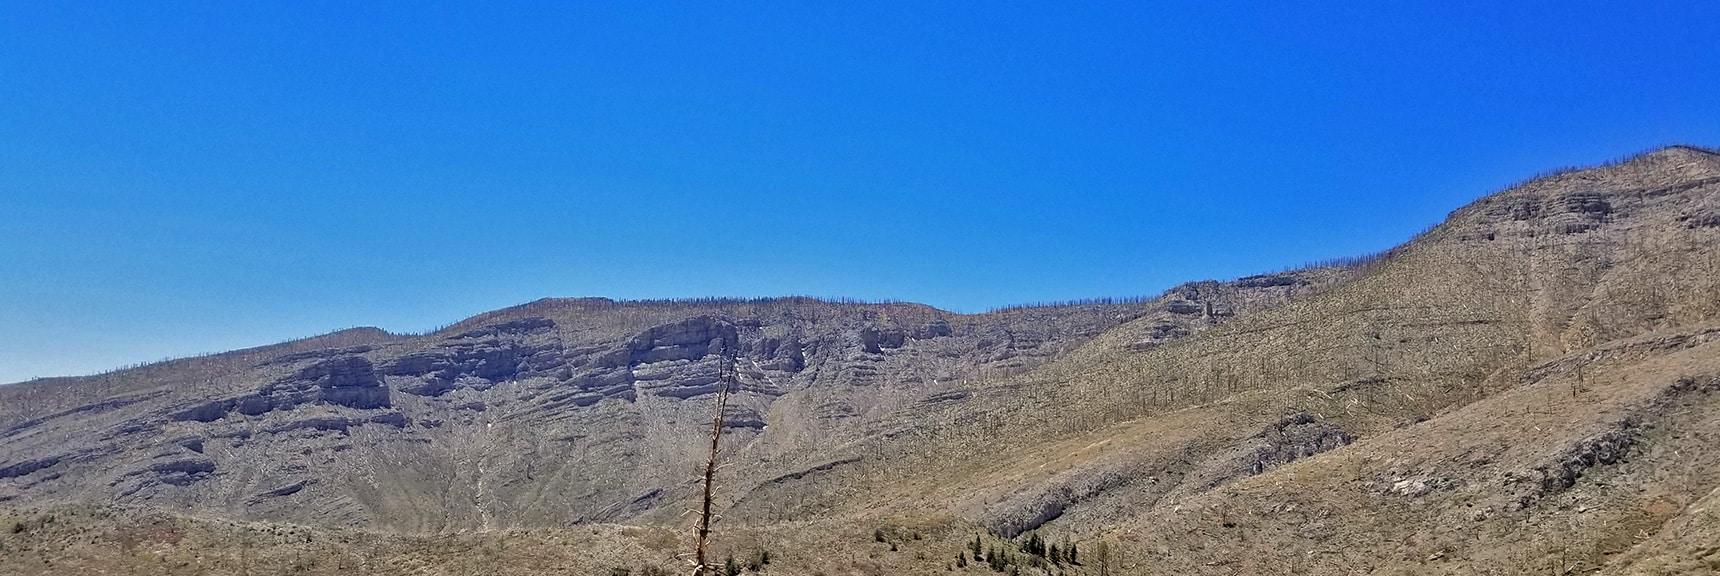 Upper Sexton Ridge from 8,300ft East Side of Lovell Canyon | Harris Mountain from Lovell Canyon Nevada